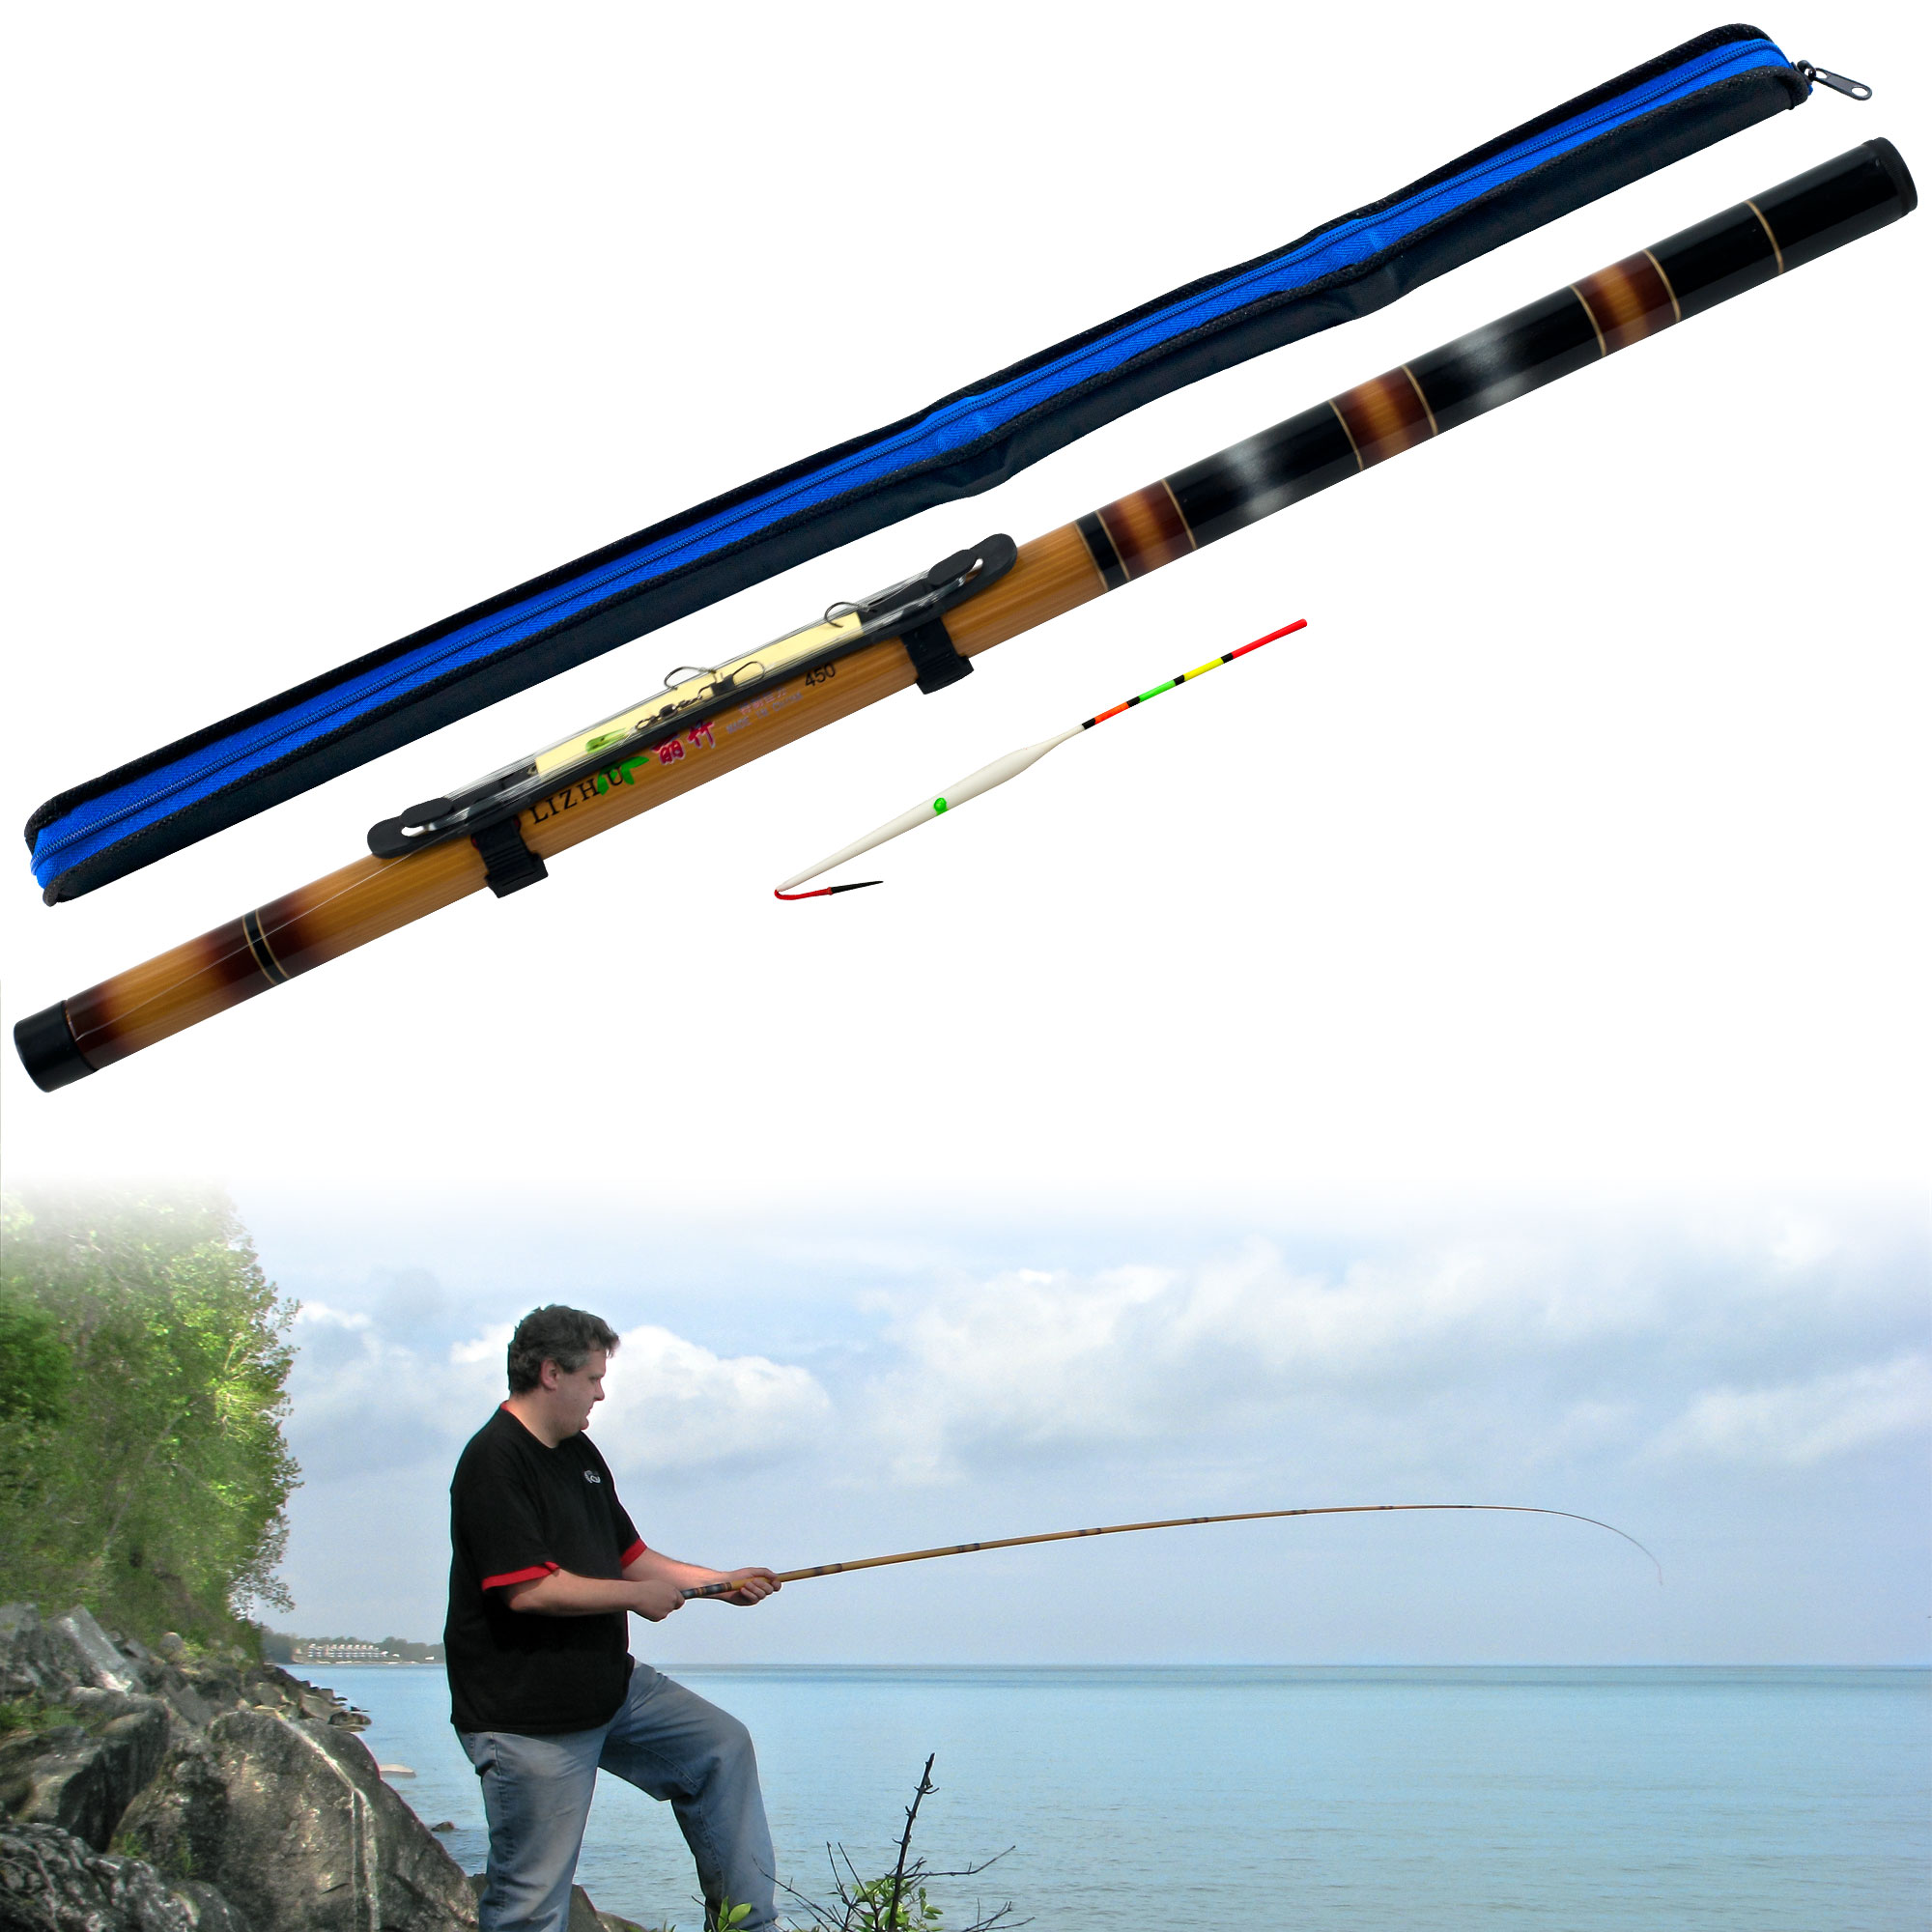 Gone fishing 12 foot telescoping fishing pole ebay for Collapsible fishing pole